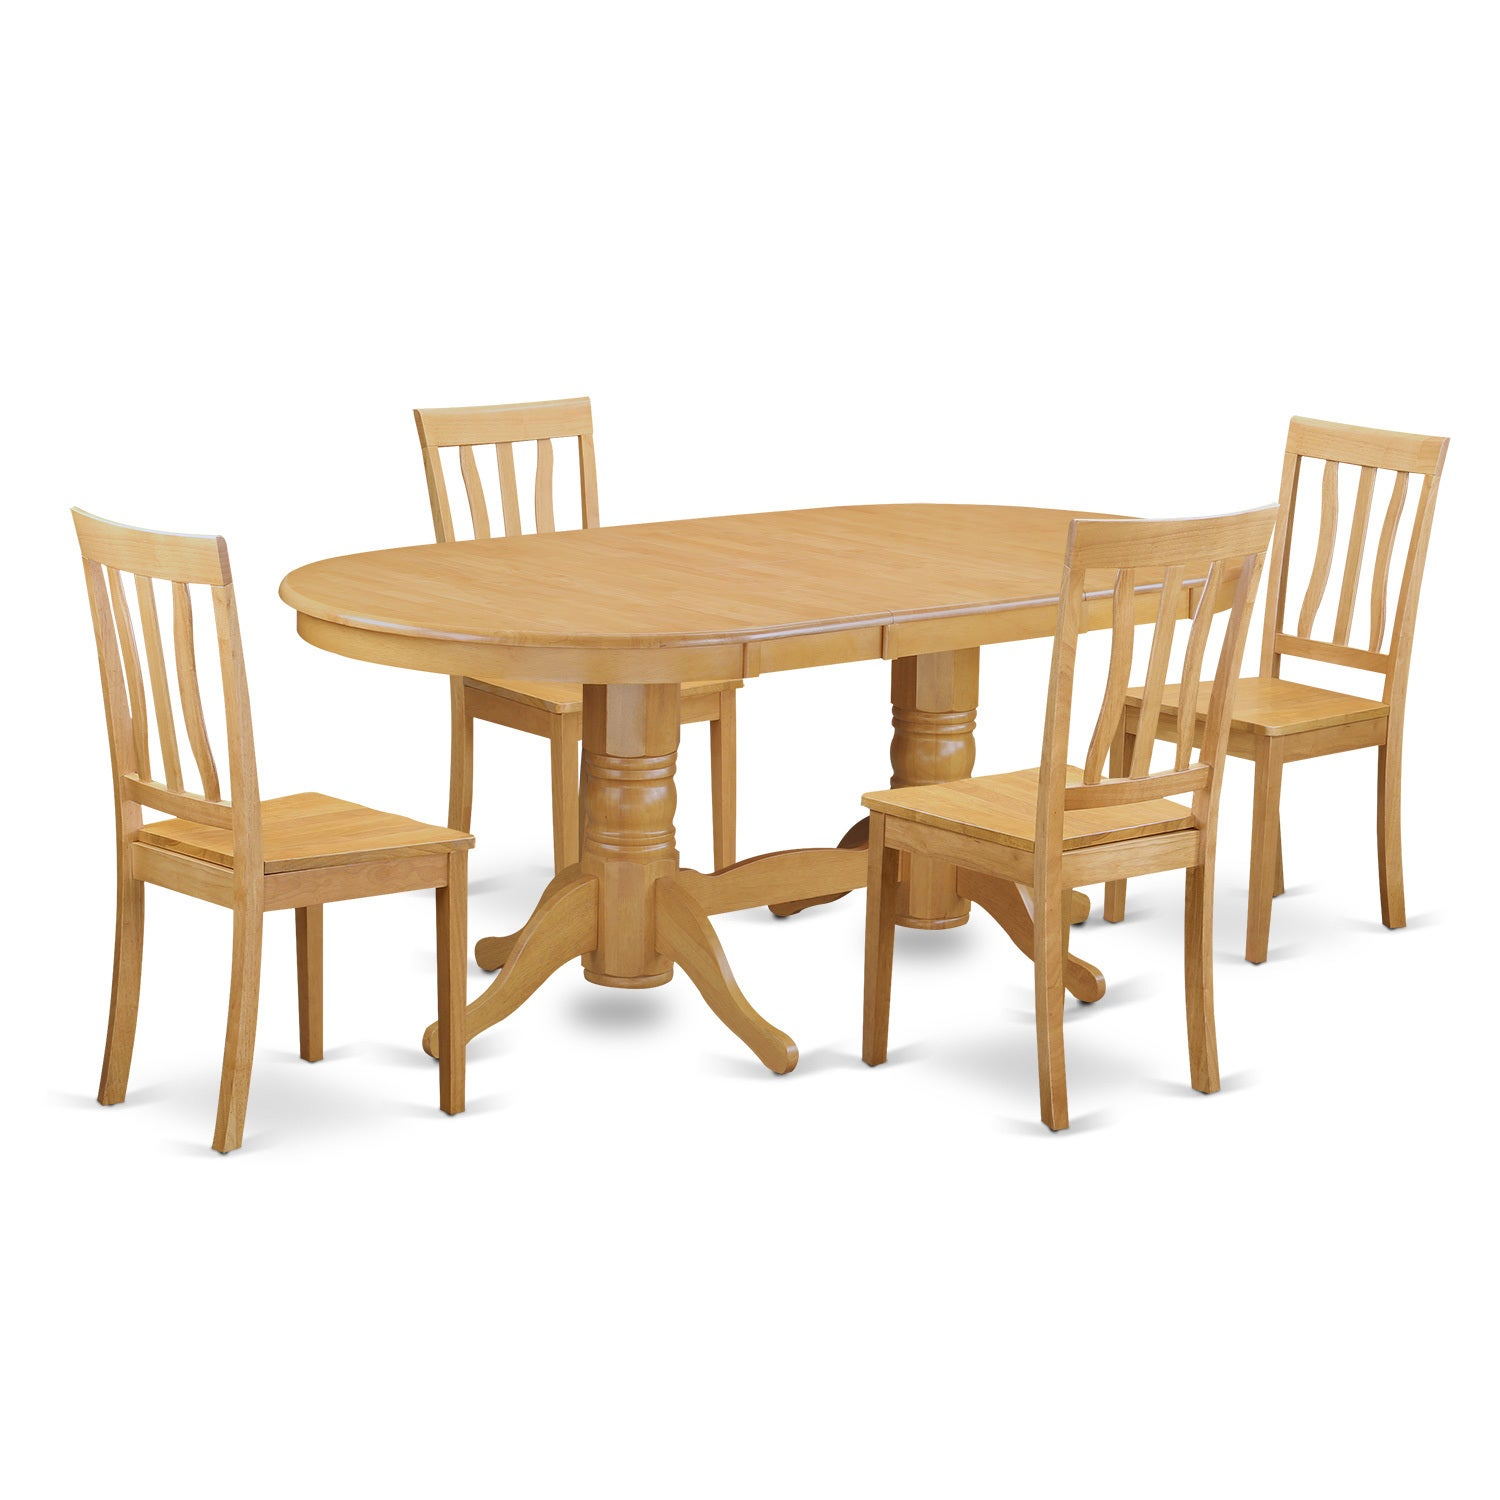 VAAN5-OAK 5 Piece Dinette table set - kitchen table and 4...